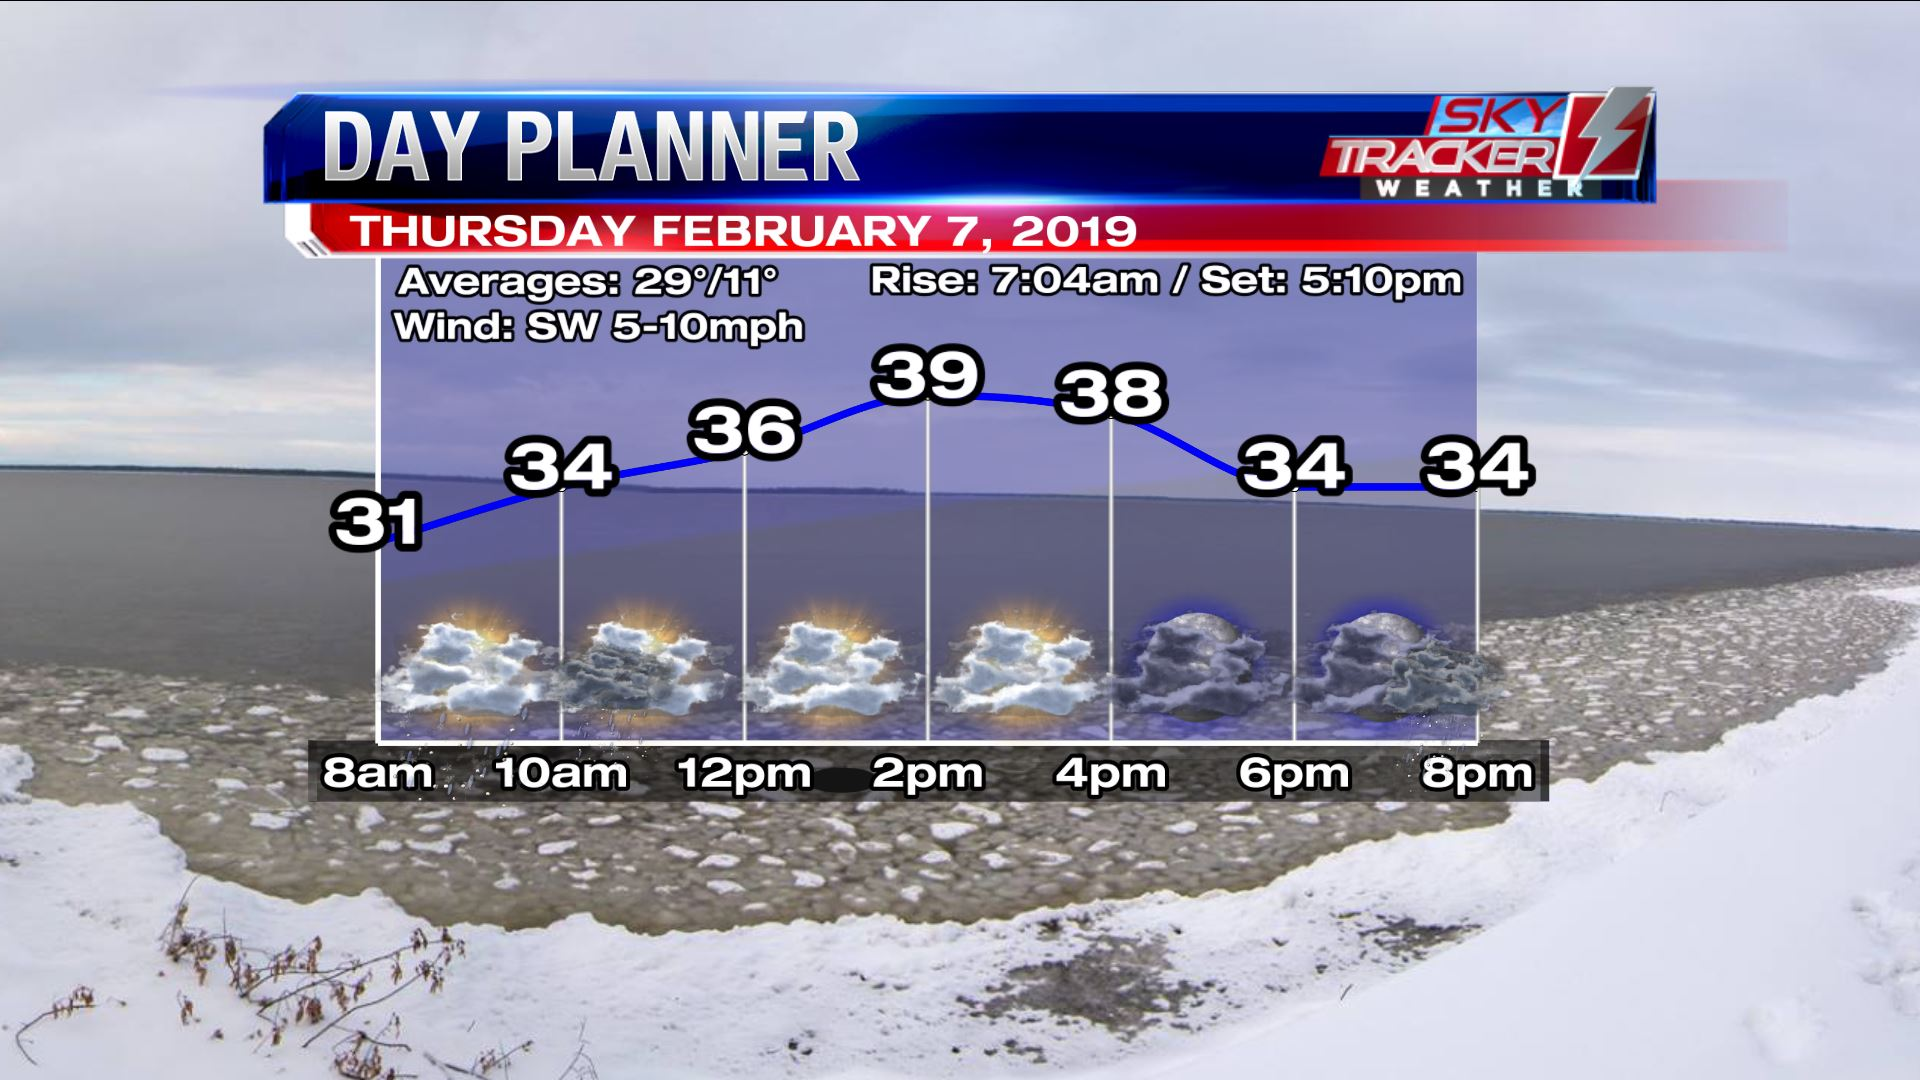 Planner for Thursday February 7 2019